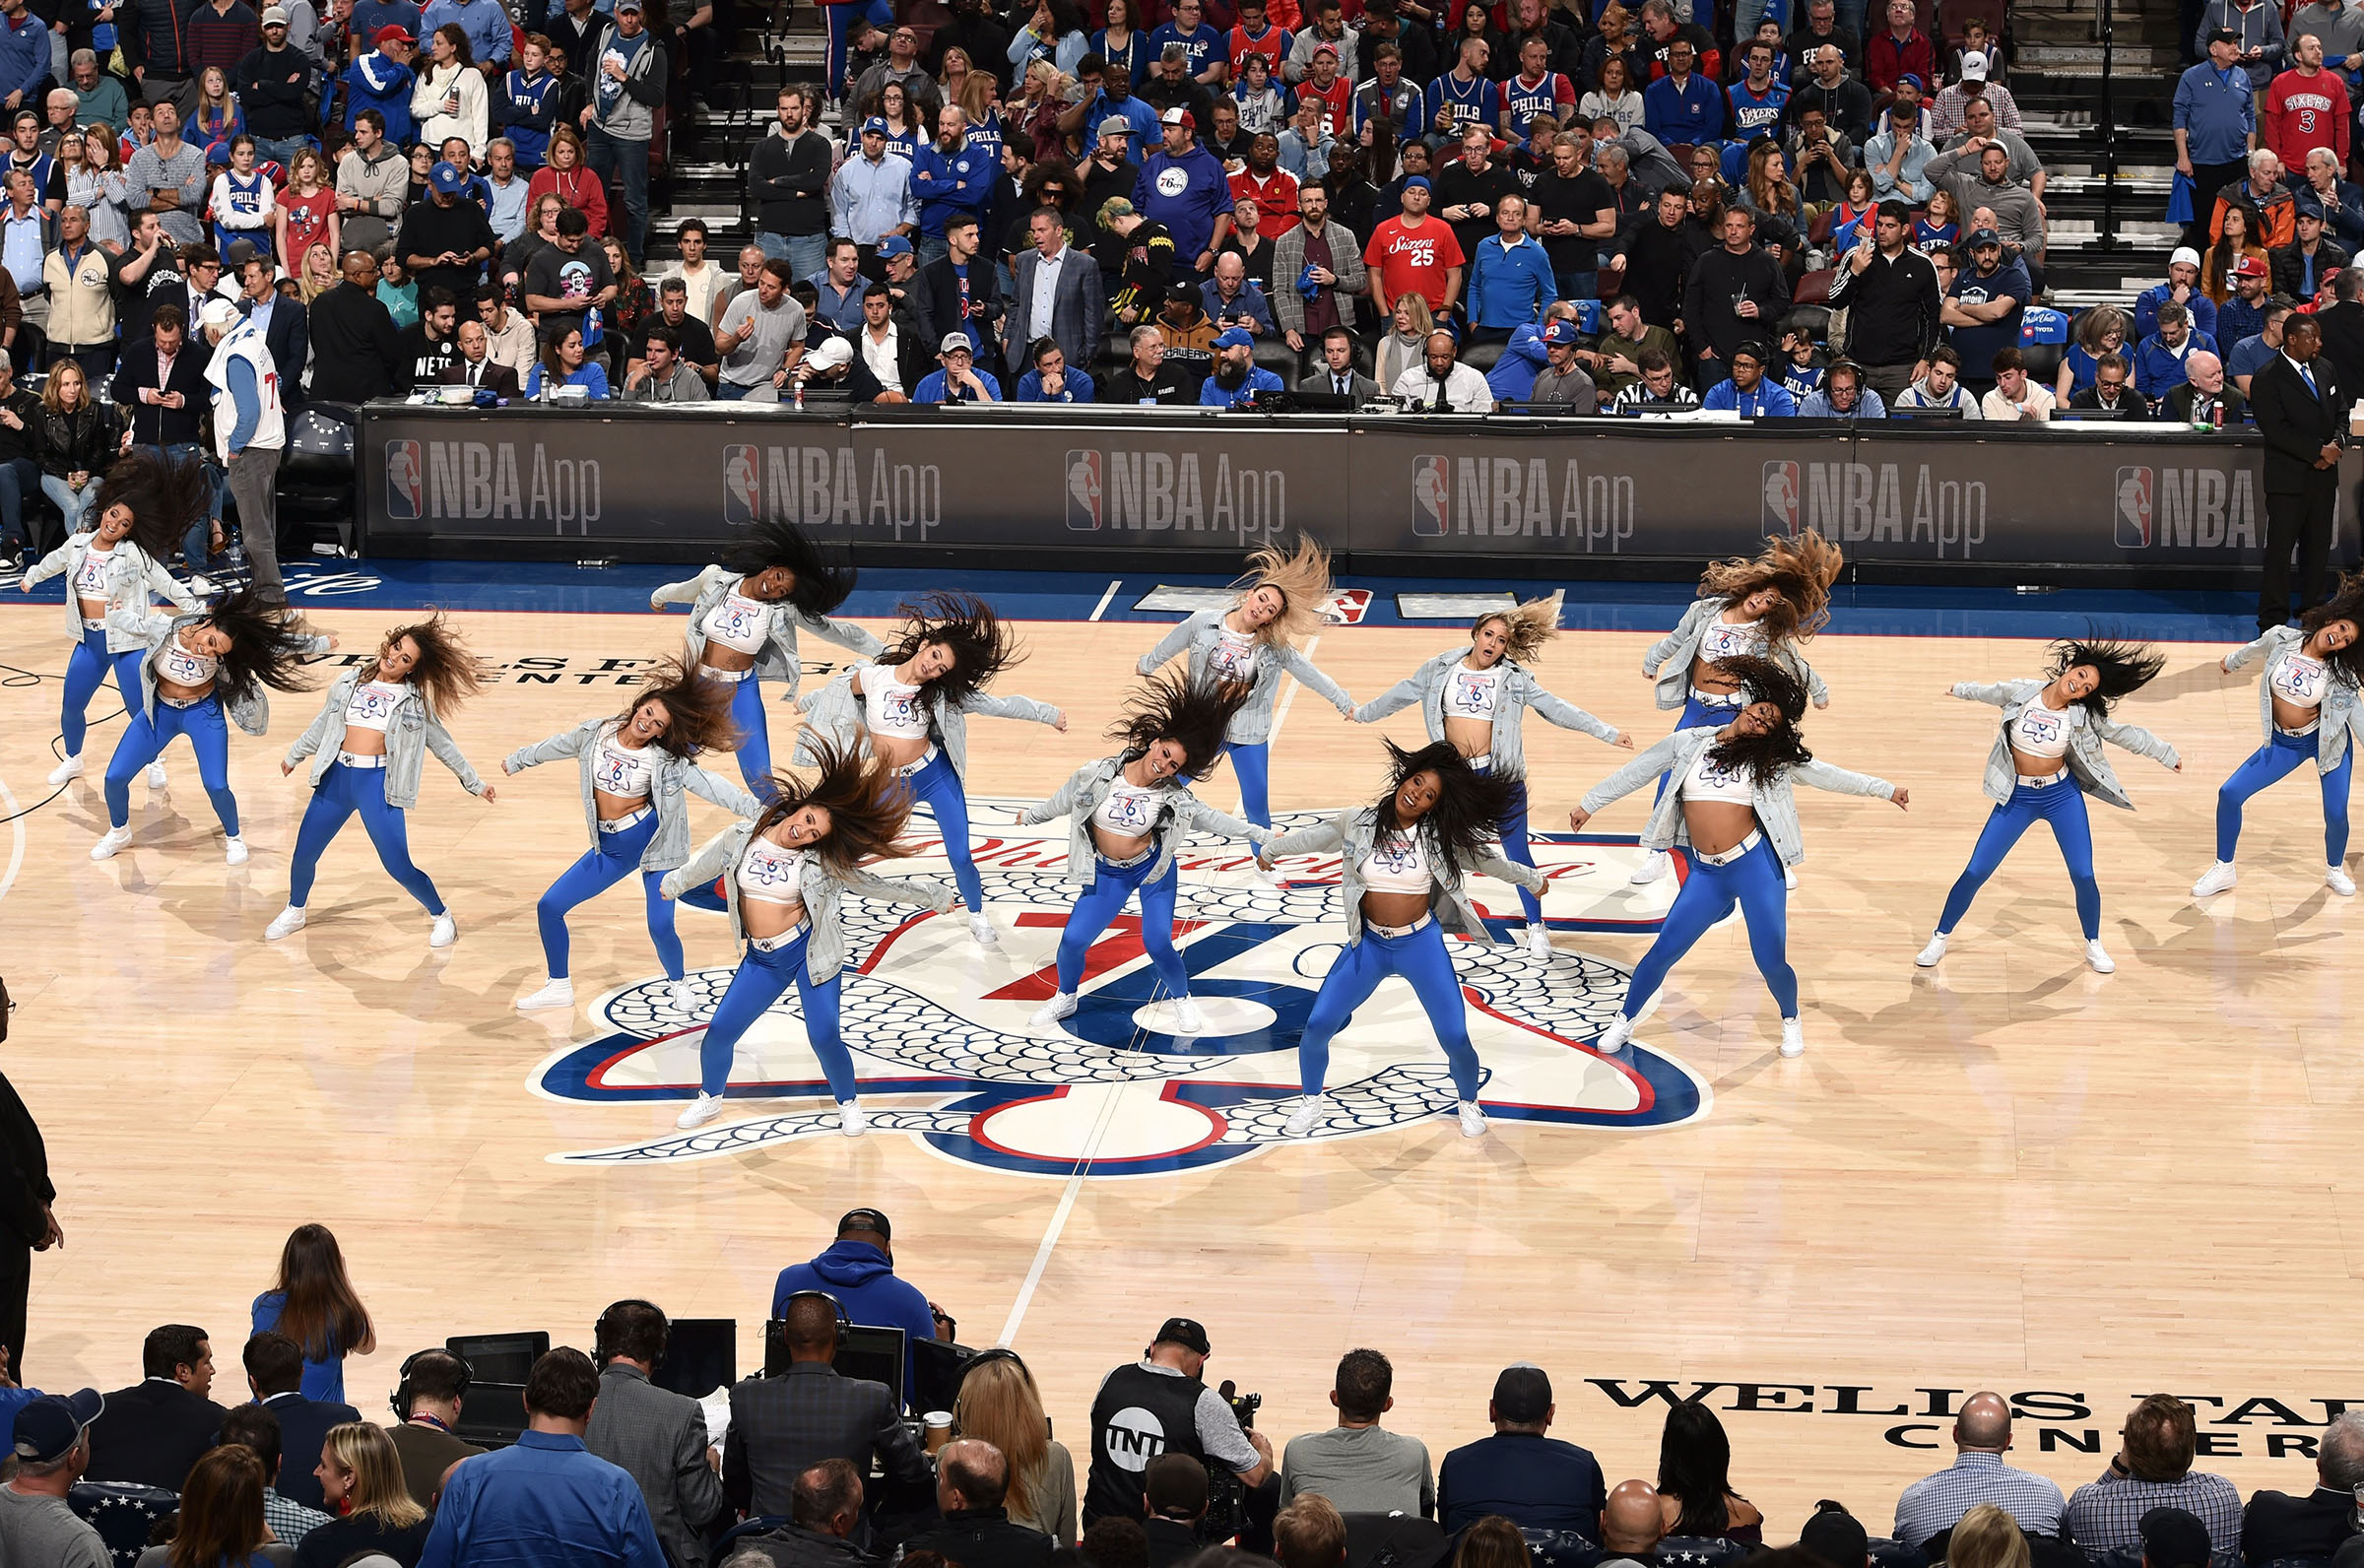 The Sixers Dancers perform in Game Two of Round One between the Brooklyn Nets and the Philadelphia 76ers during the 2019 NBA Playoffs on April 15, 2019 at the Wells Fargo Center in Philadelphia, Pennsylvania.